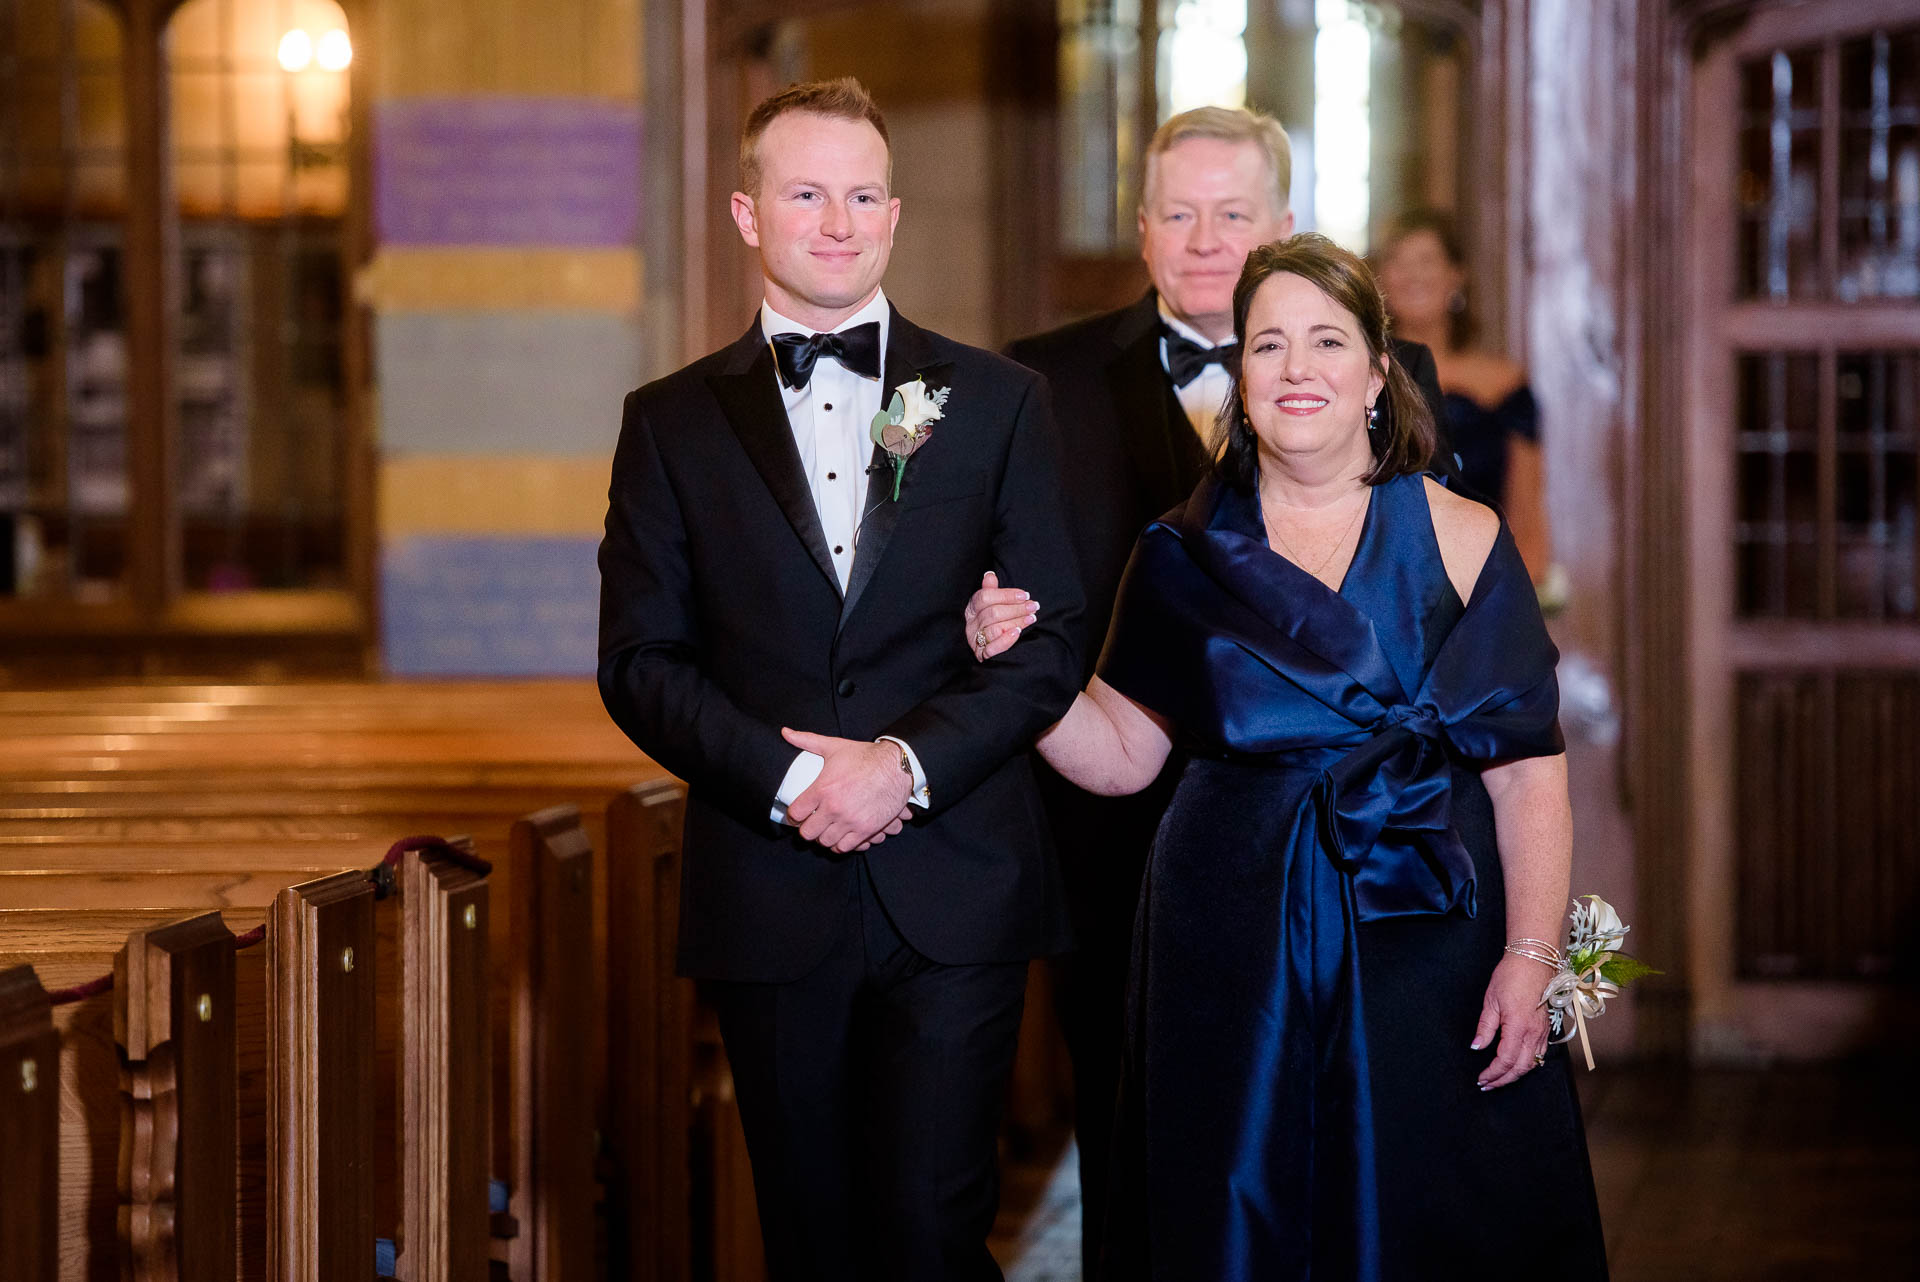 Groom and mother walk down the aisle during a wedding ceremony at Fourth Presbyterian Church in Chicago.